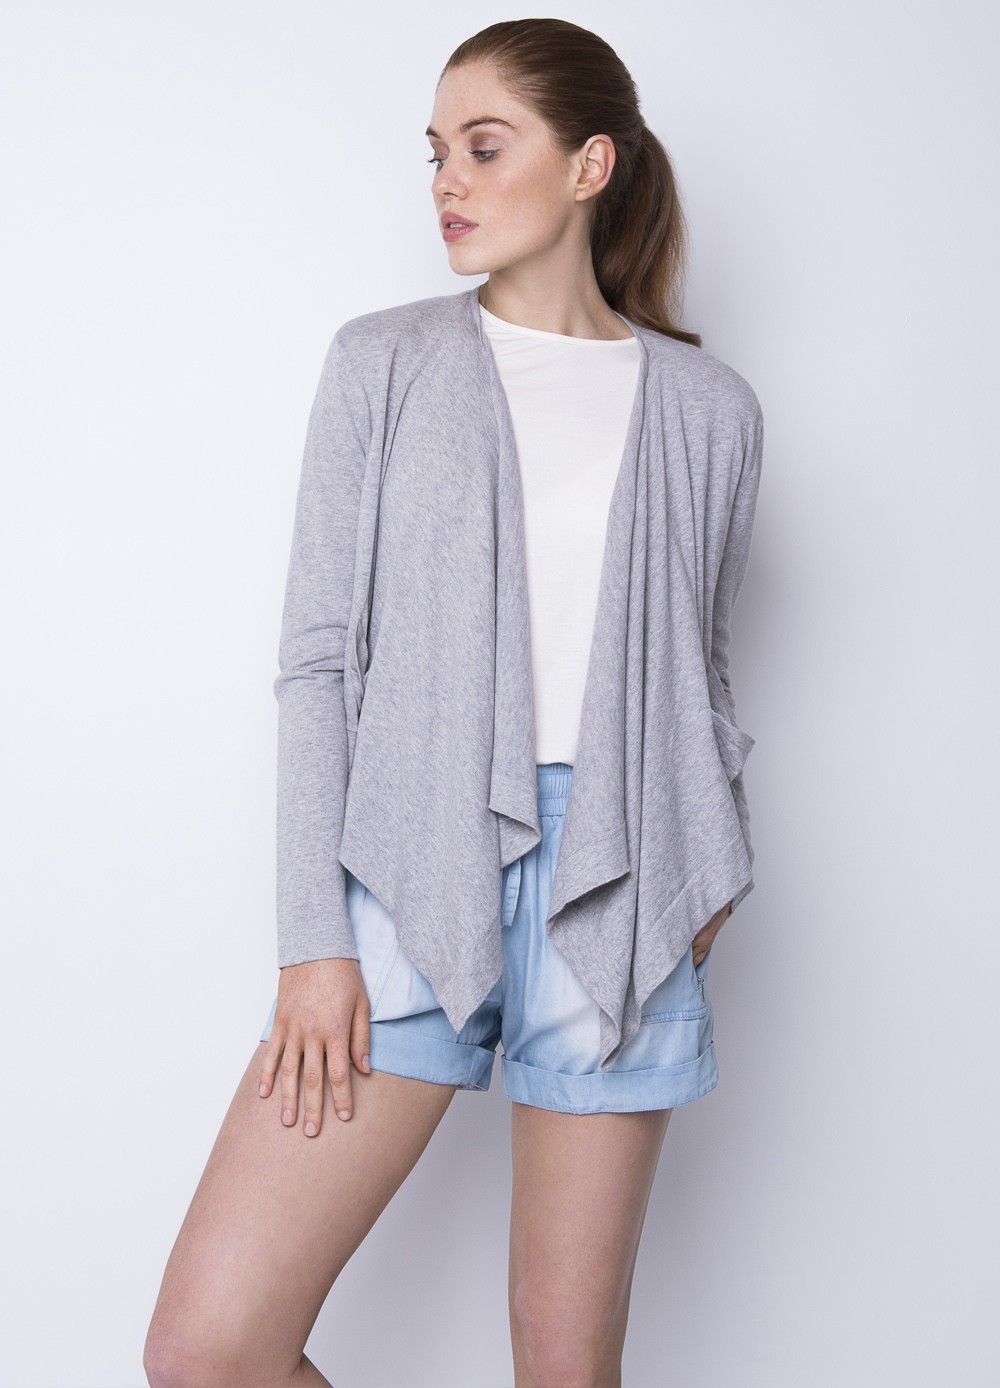 drapes knit type com chaserbrand l s love cardigan open girls pkcl products draped front product